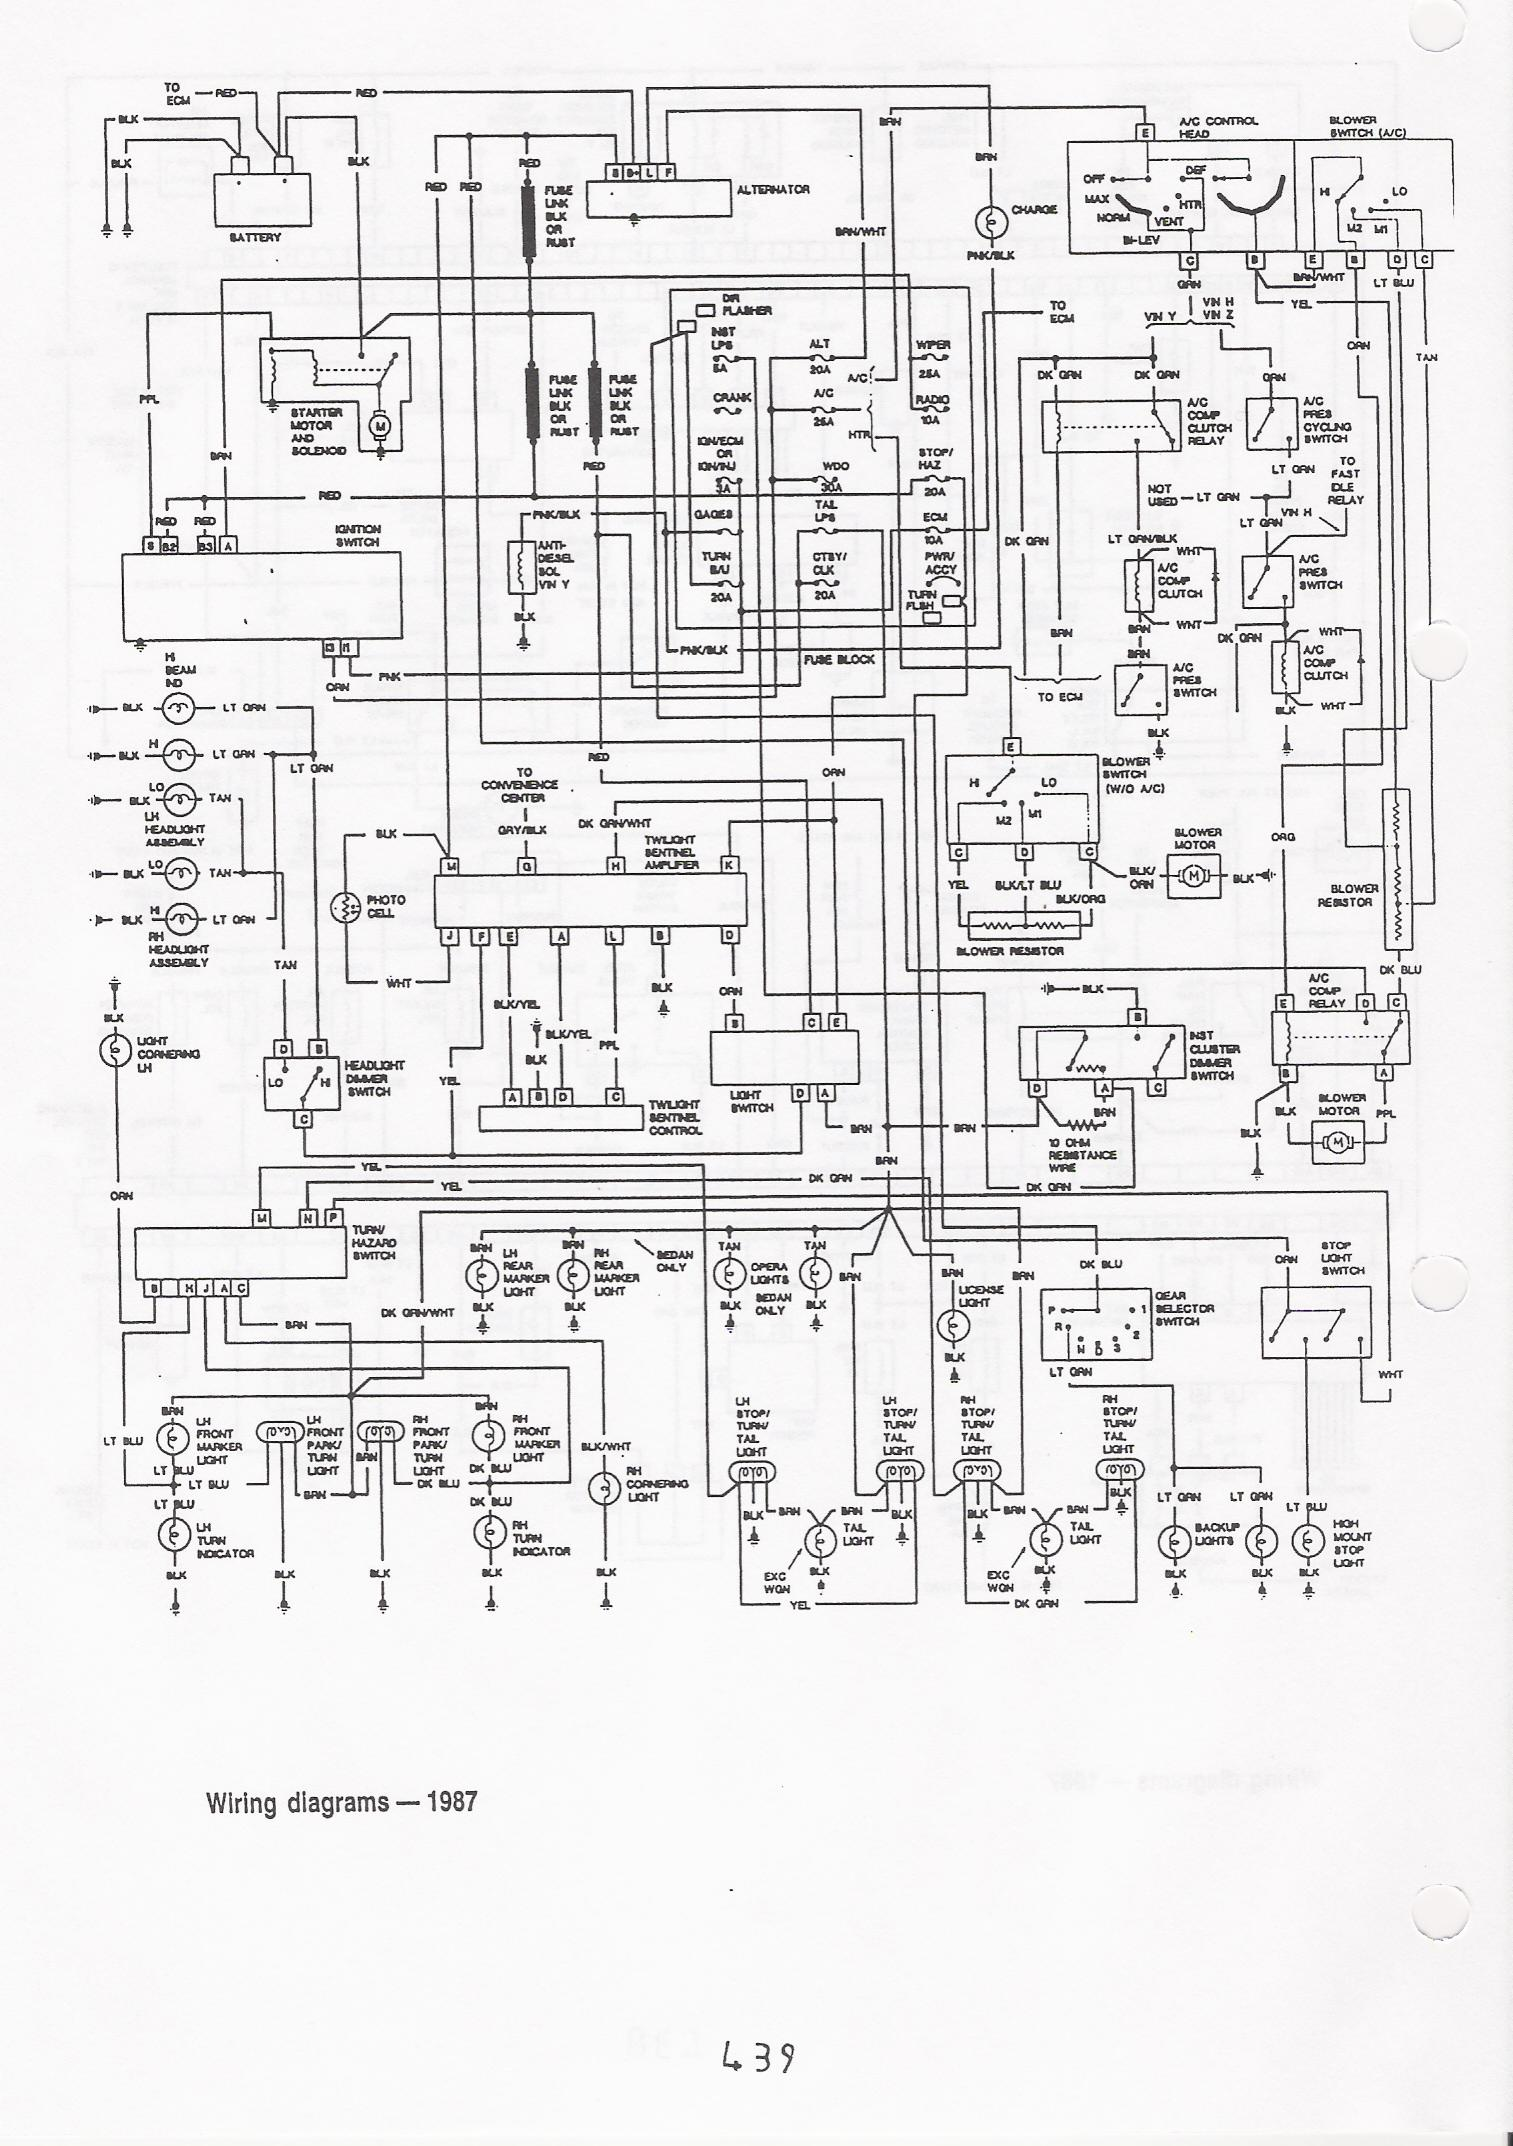 1968 Nova Wiring Diagram 1969 Chevy Library Exhaust Systems Camaro Horn Corvette Radio